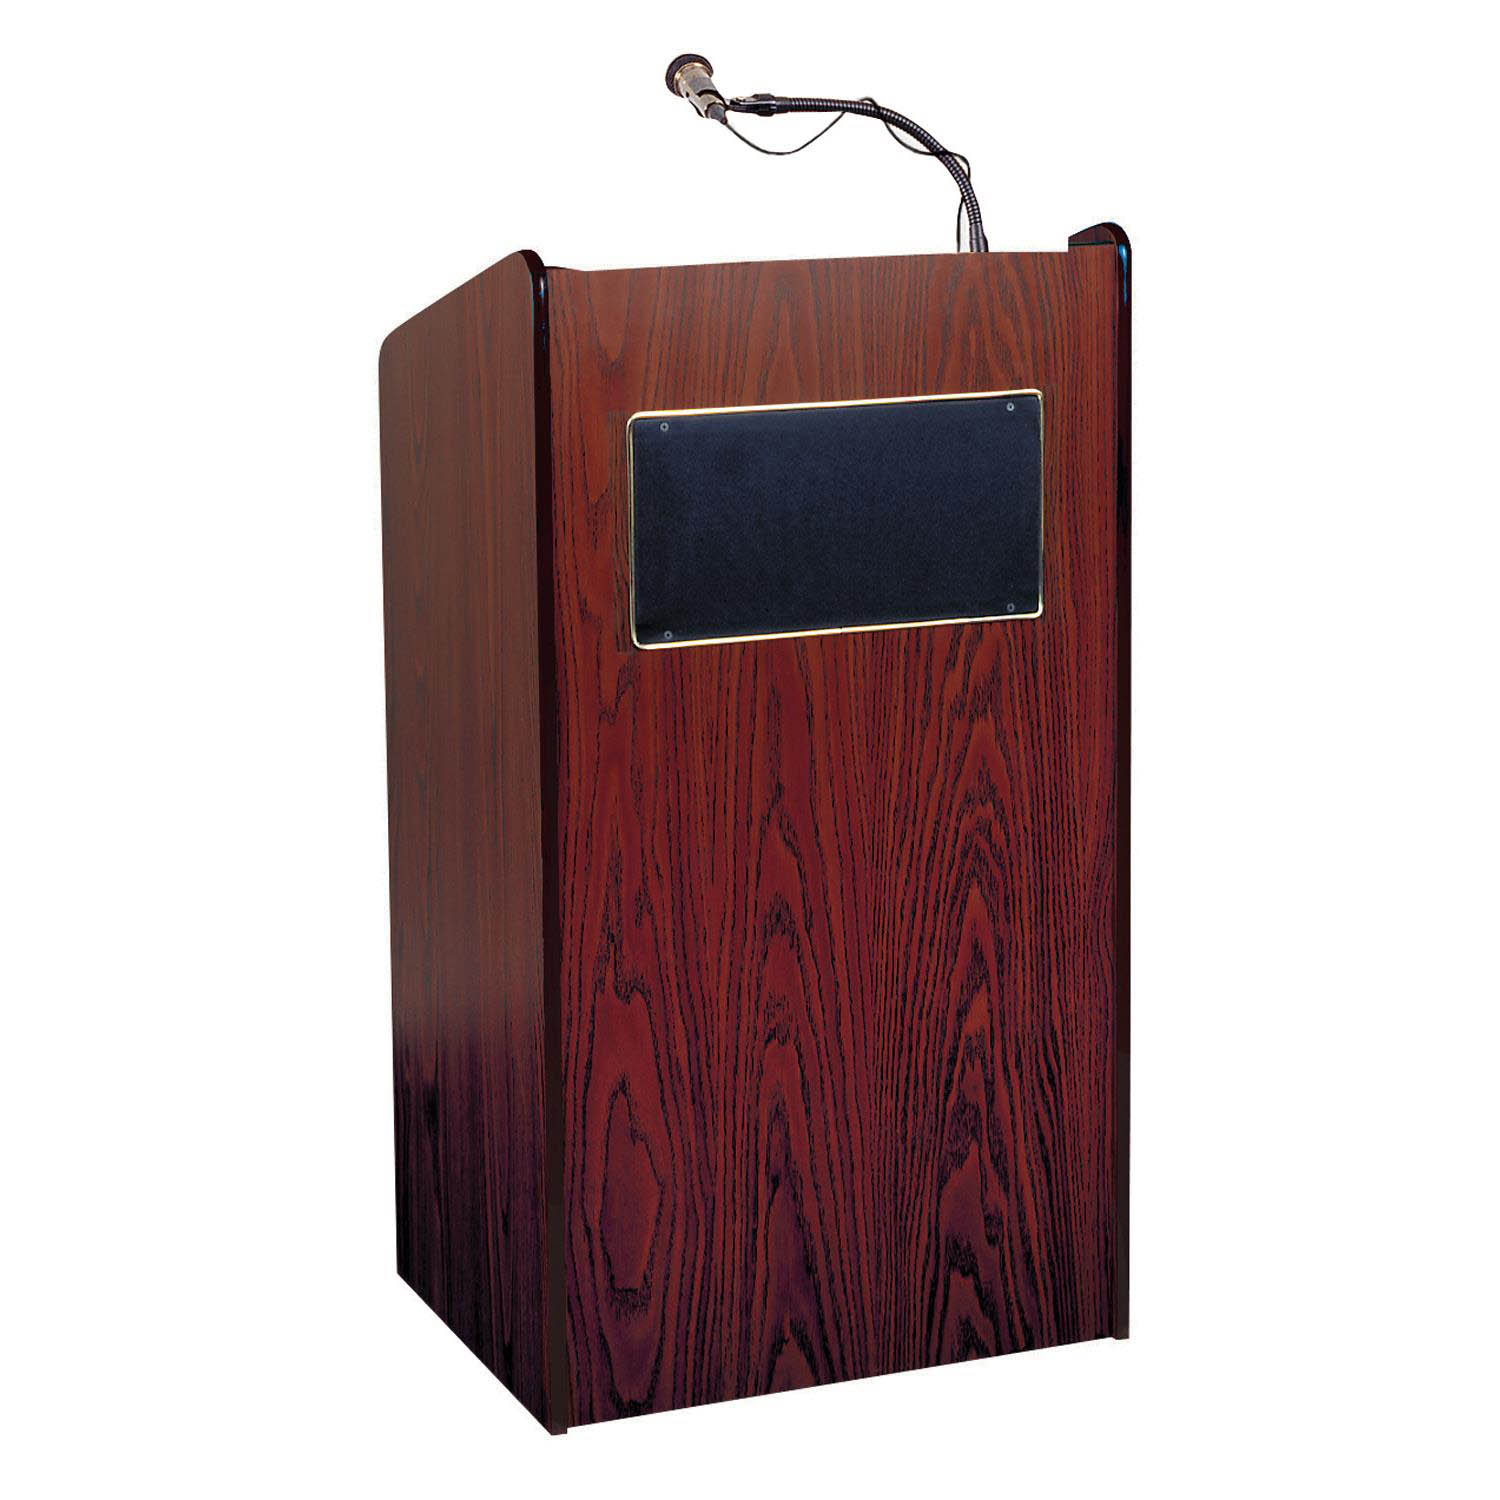 Aristocrat Full Floor Lectern Podium With Sound And 2 Built In